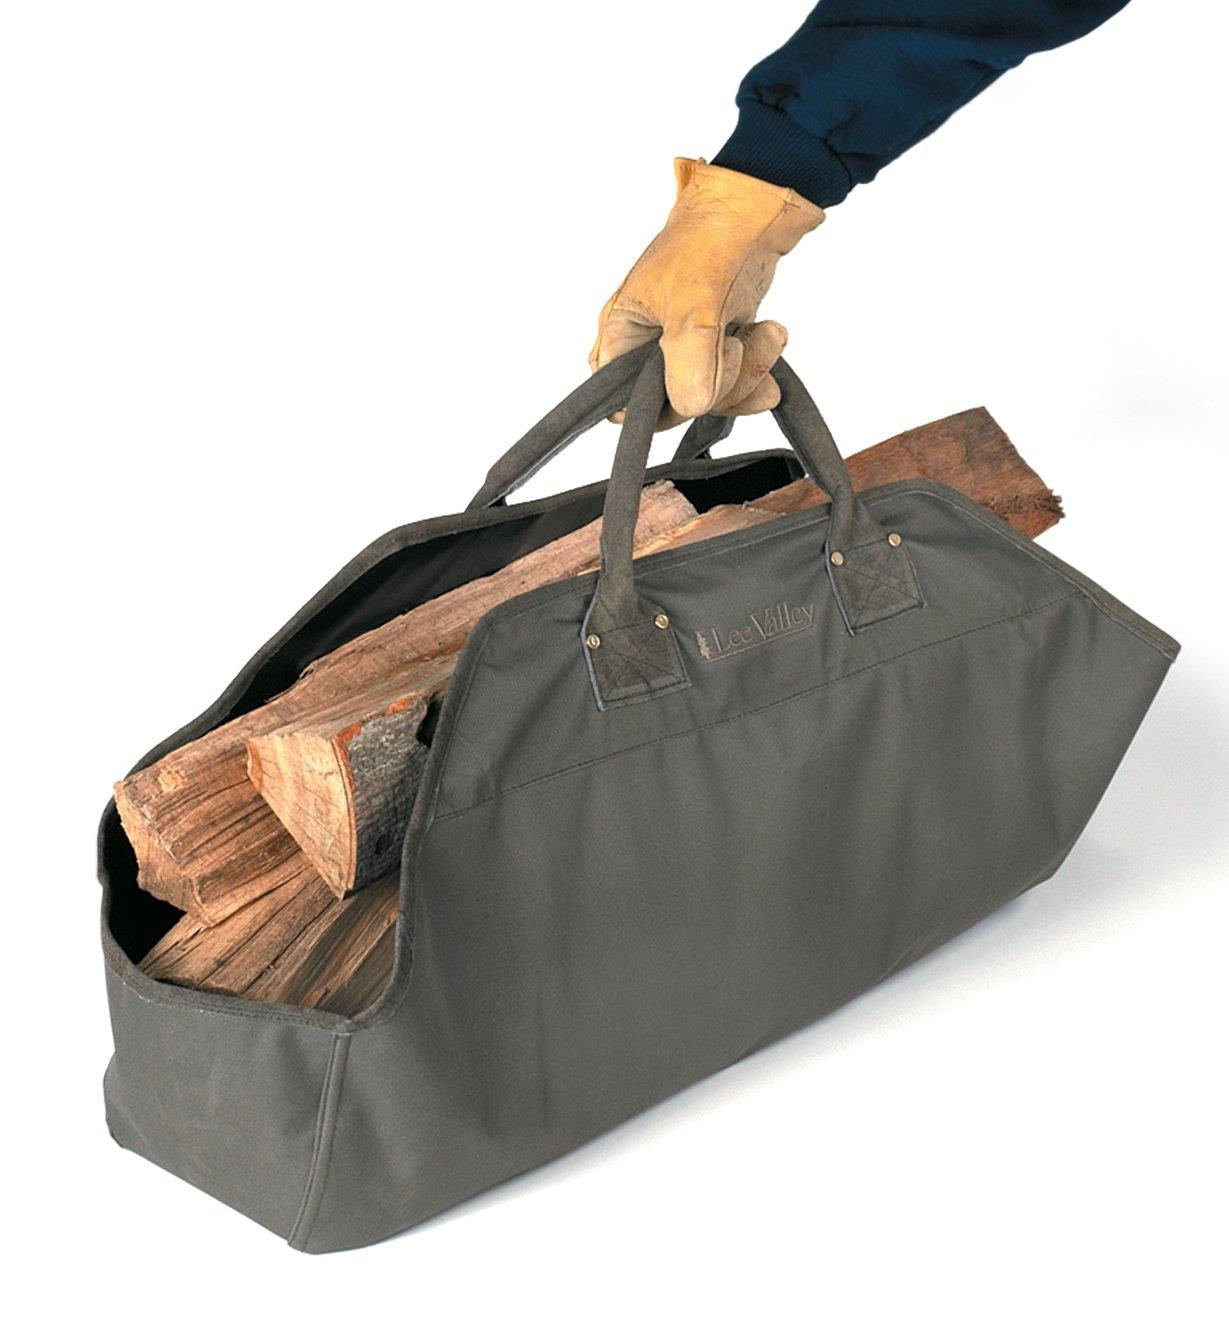 Lee Valley Firewood Tote filled with firewood, being picked up by the handles